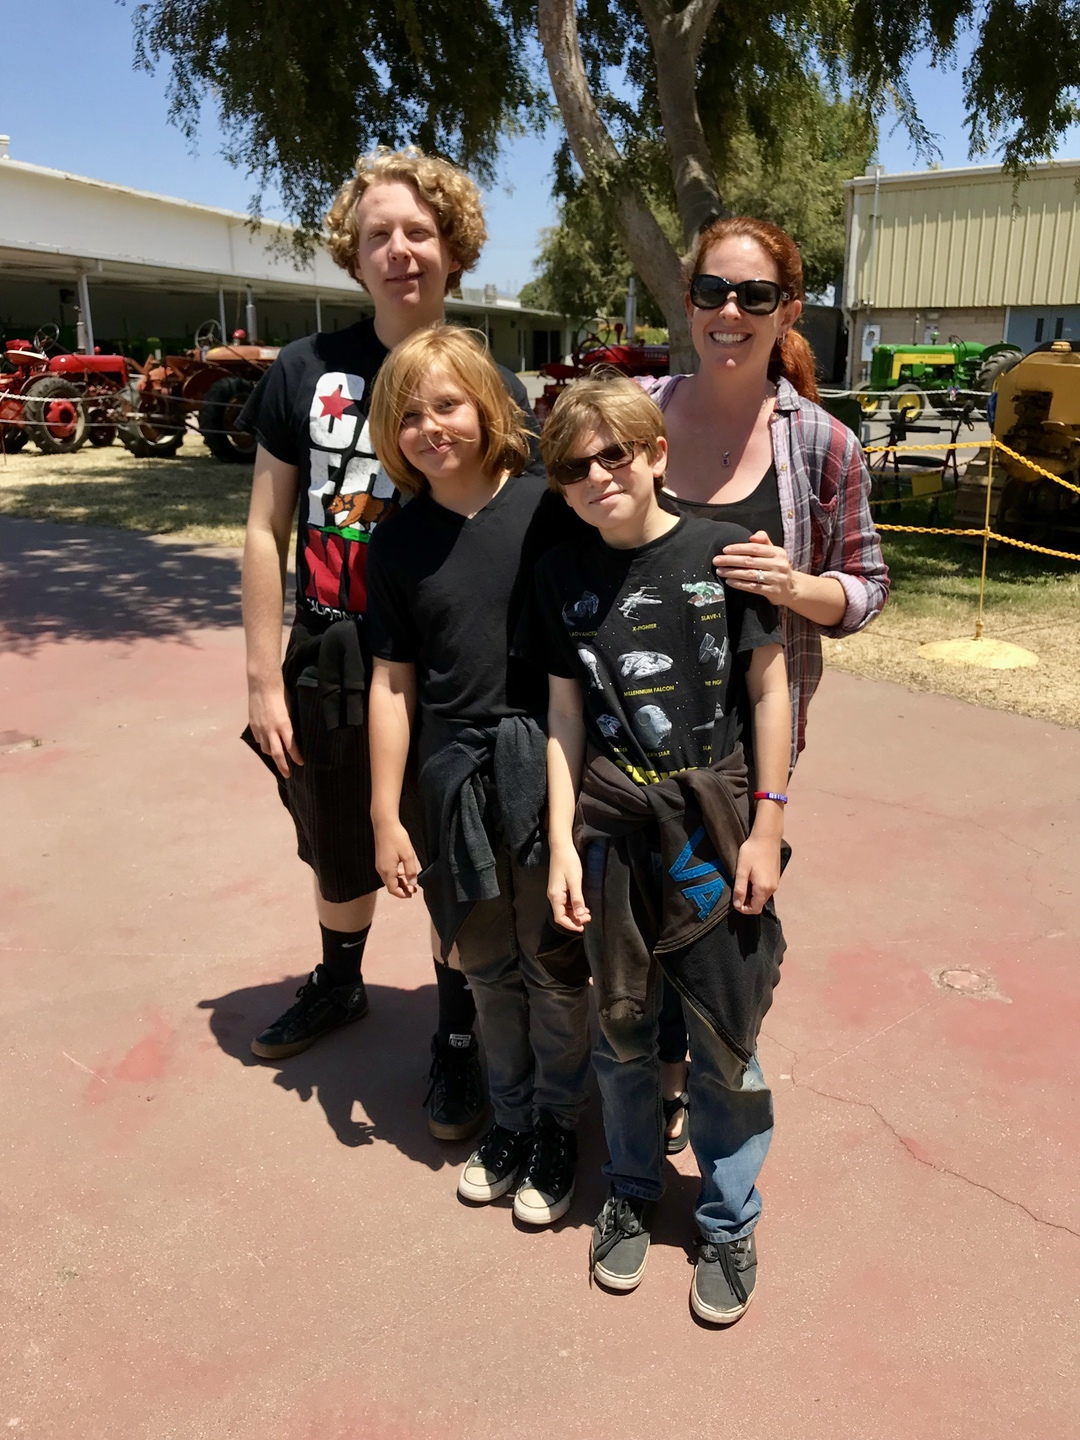 Santa Barbara County Fair #fair #fun #familyfun #amusementpark #blog #blogger #bloggermom #momblogger #savings